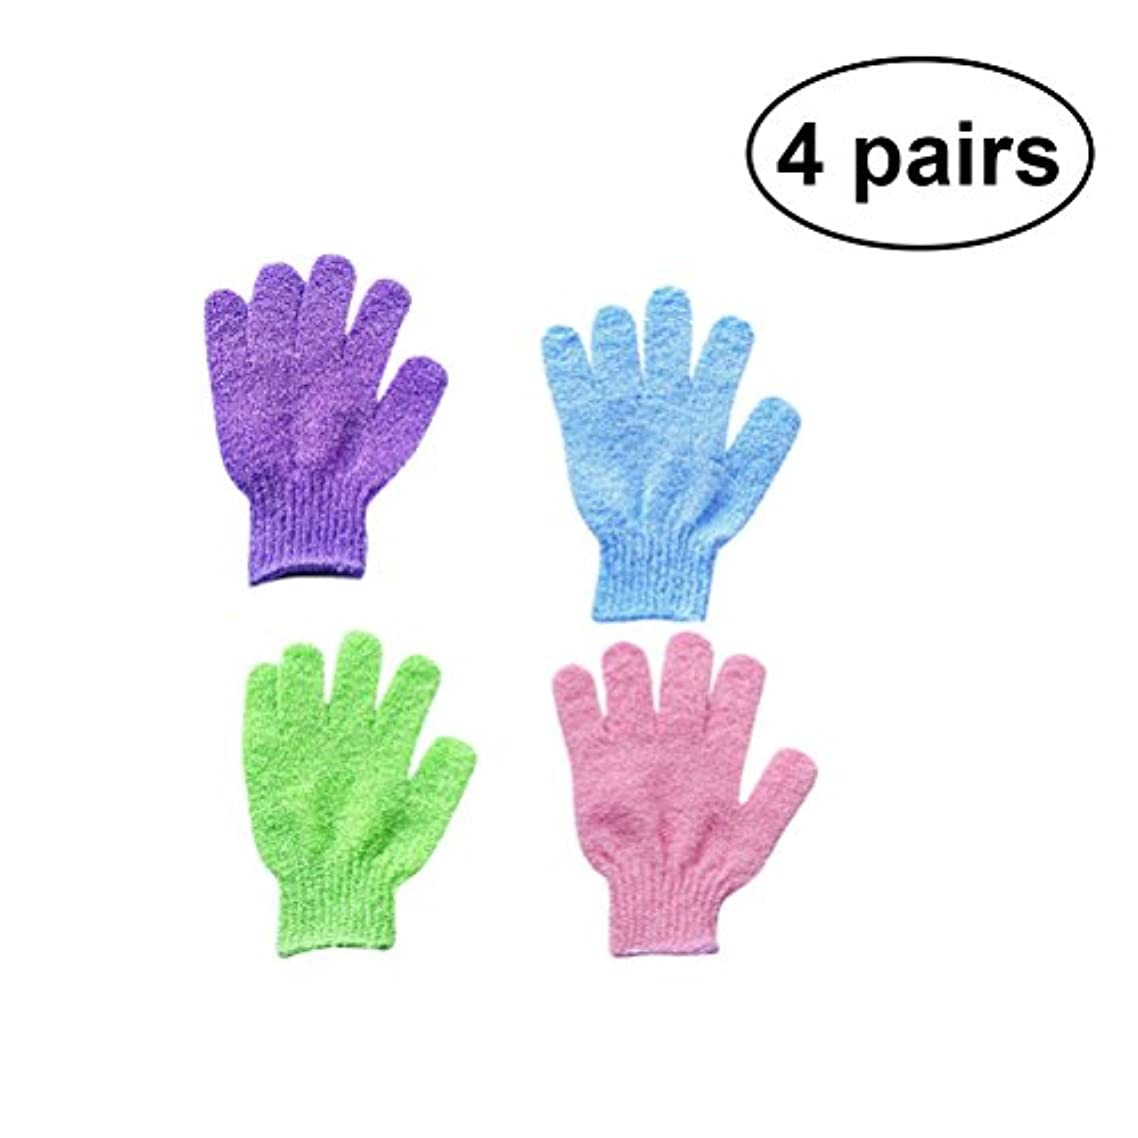 属性気味の悪い離れたHealifty 4 Pairs Exfoliating Bath Gloves Shower Mitts Exfoliating Body Spa Massage Dead Skin Cell Remover